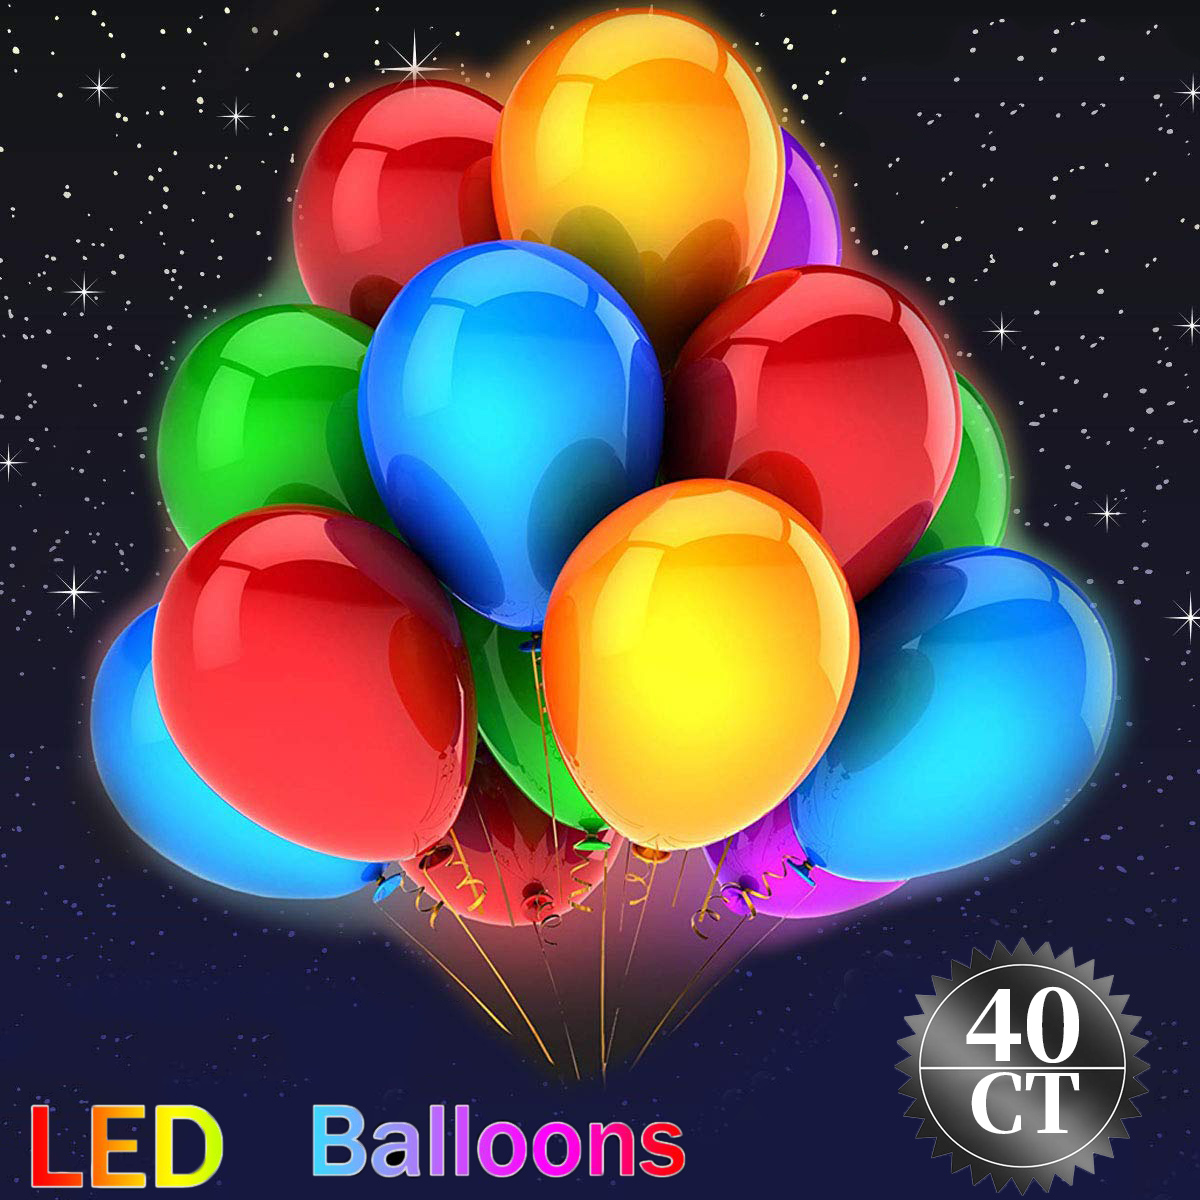 LED Light-Up Balloons 2019 Valentine's Day Party Lights Birthday Wedding Decorations Christmas Festival Club Bar Concert, Lasts 48 Hours, Assorted, 9in, 40ct